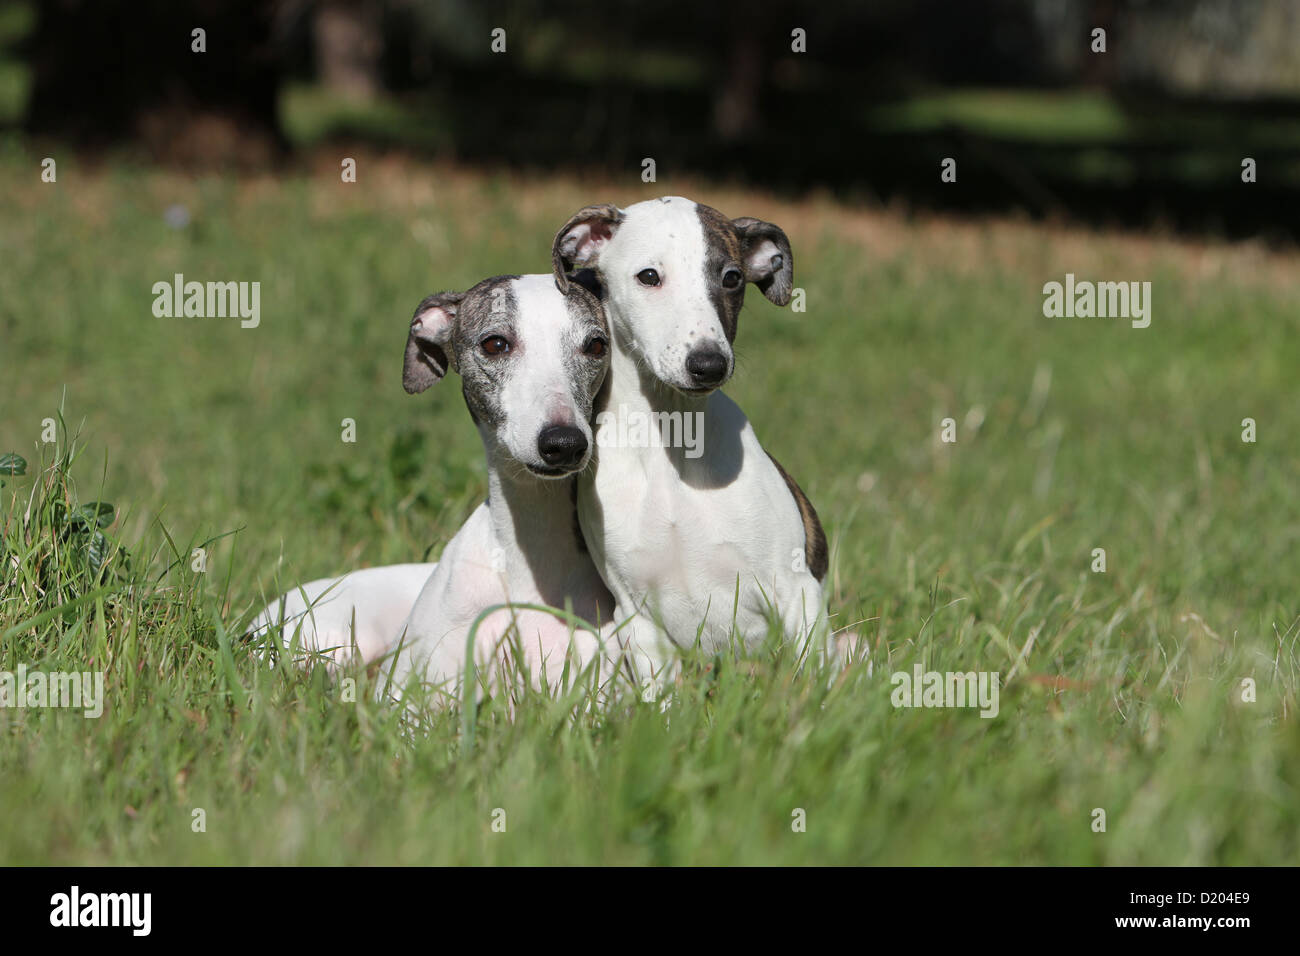 Two Whippets Stock Photos Amp Two Whippets Stock Images Alamy